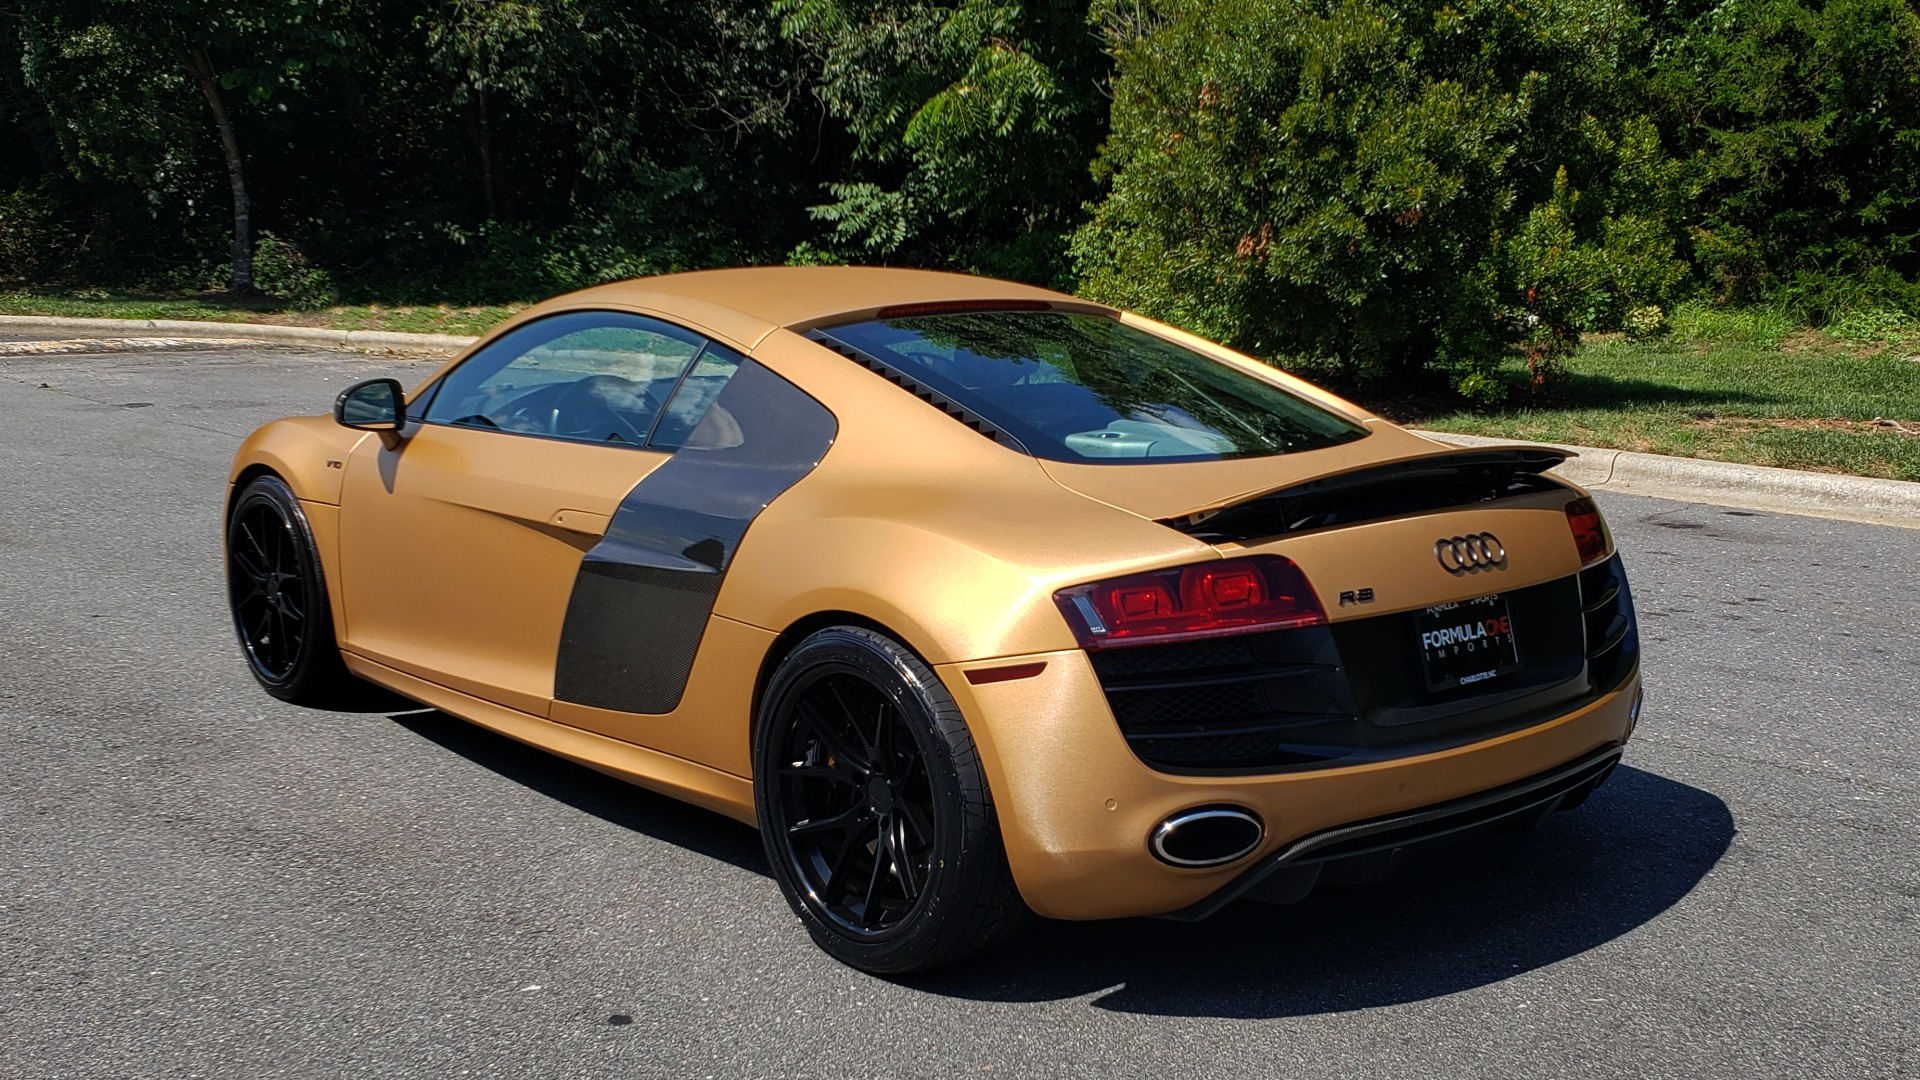 Used 2012 Audi R8 V10 5.2L / CUST WRAP BRUSHED BRONZE / NAV / B&O SOUND / CUST 19IN WHLS for sale $79,999 at Formula Imports in Charlotte NC 28227 5